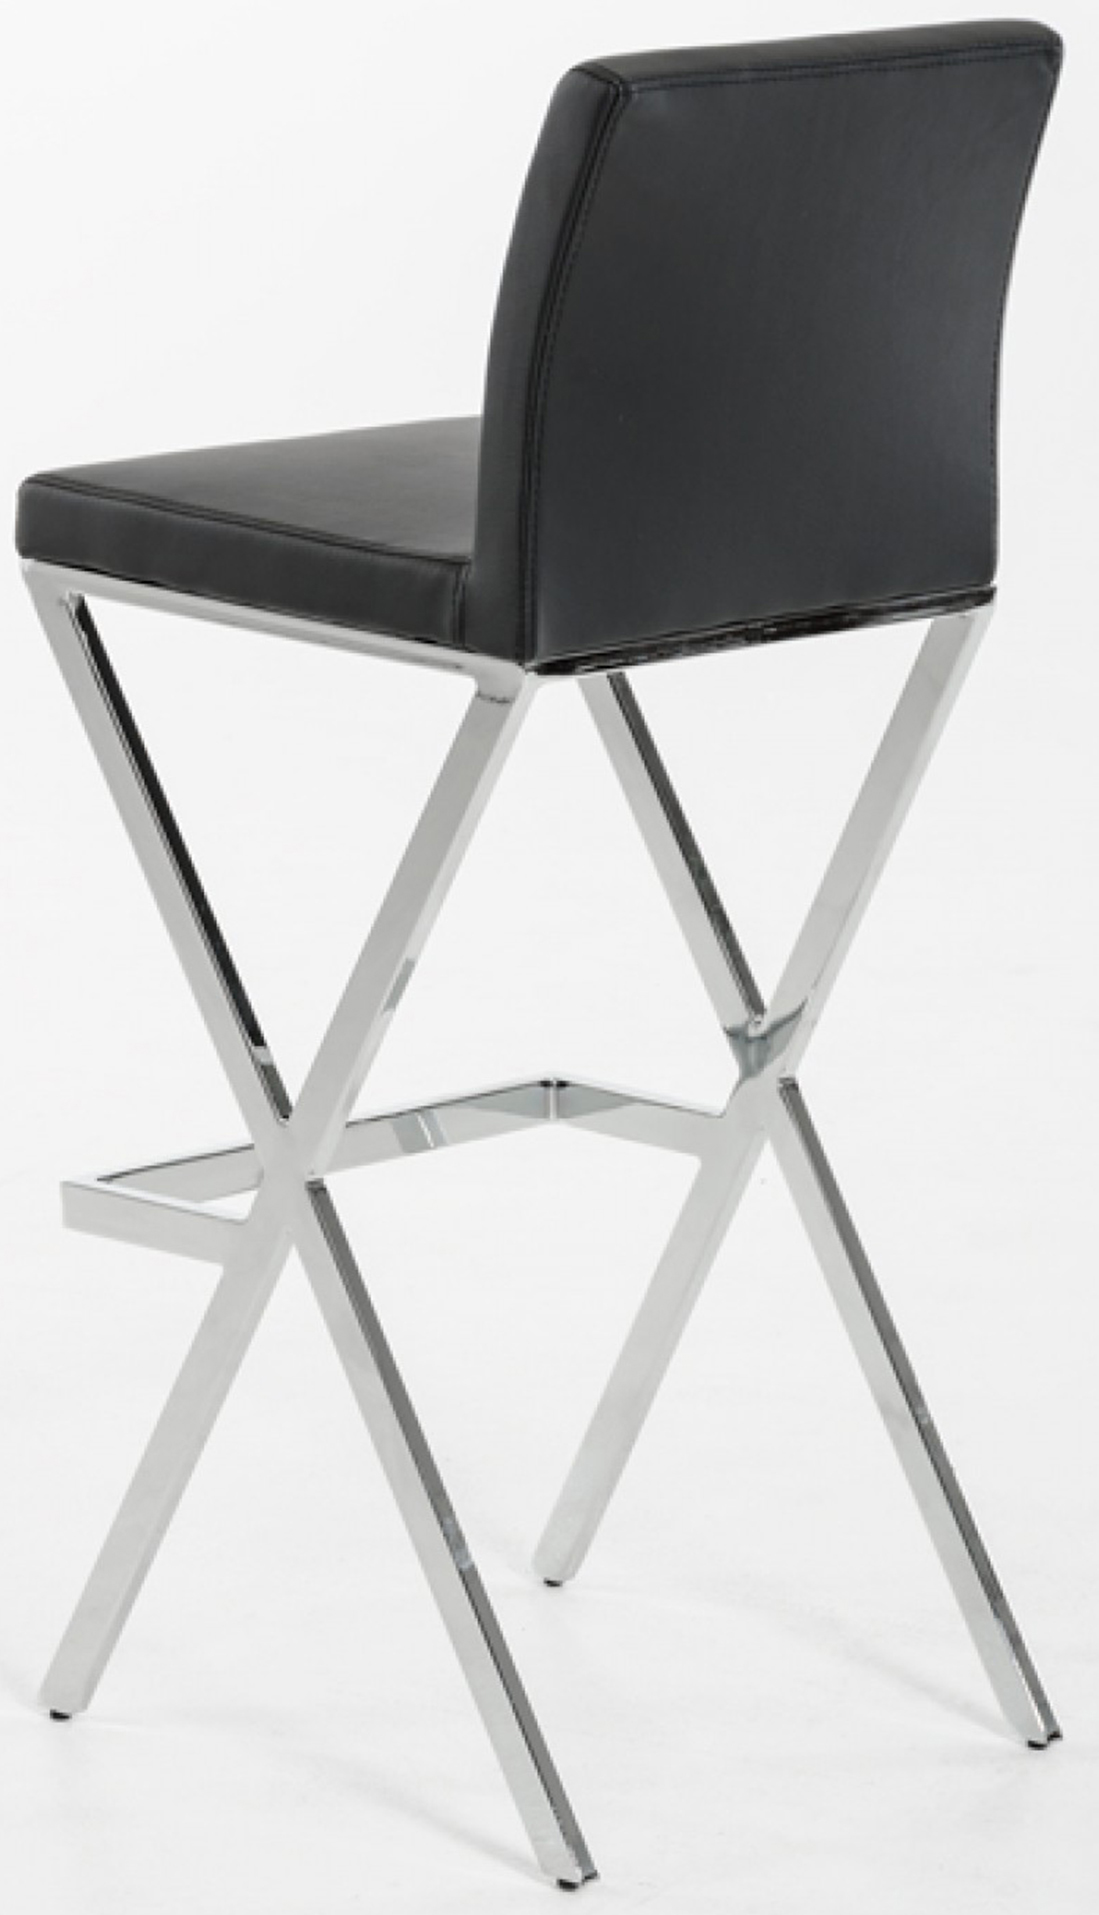 enjoy this brand new and elegant black bar stool in any dining room or kitchen.